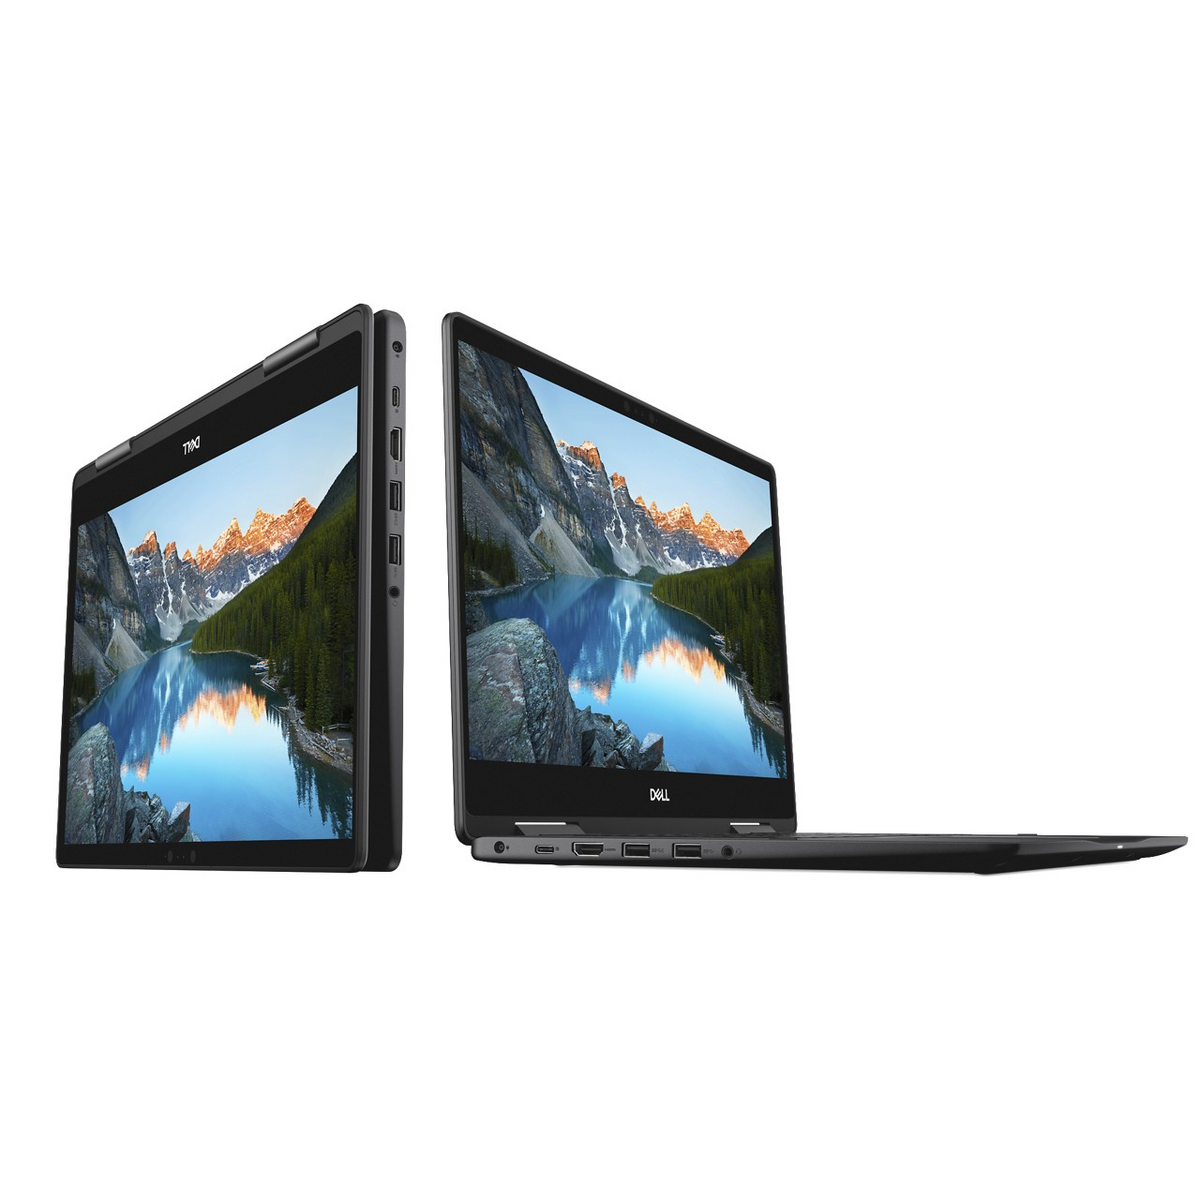 The Dell Inspiron 15 7000 2-in-1 gets a 'Special Edition